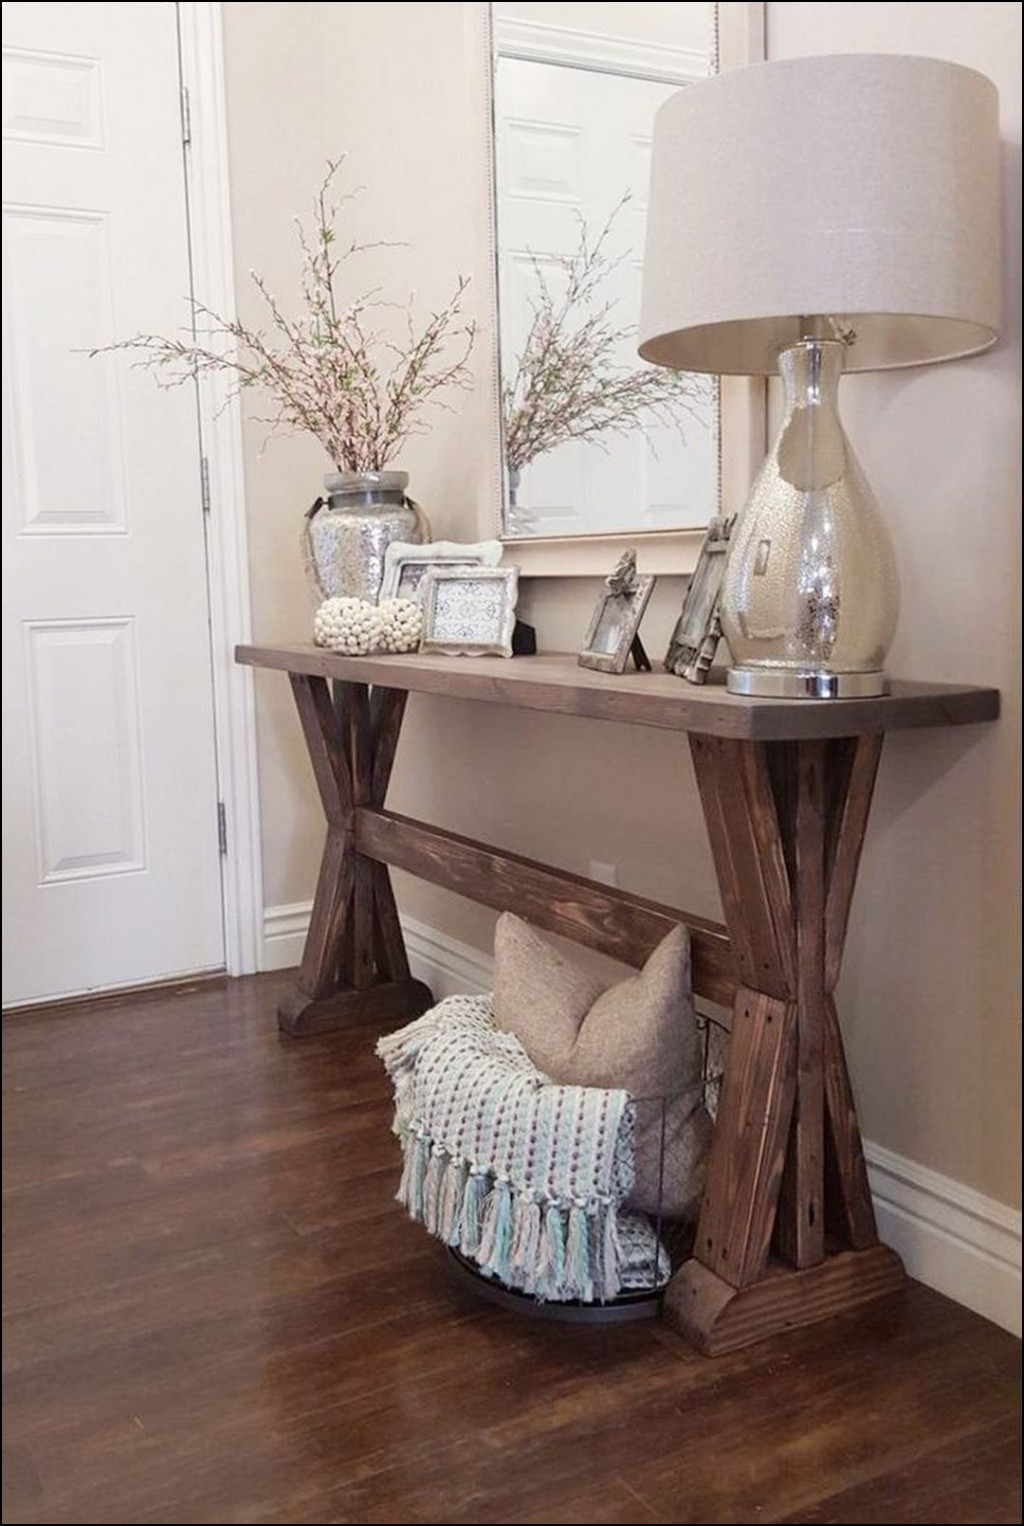 cool foyer accent table home design ideas unique adorable rustic farmhouse entryway decorating creative legs round wood dining room decor target turquoise lamp pier outdoor wicker